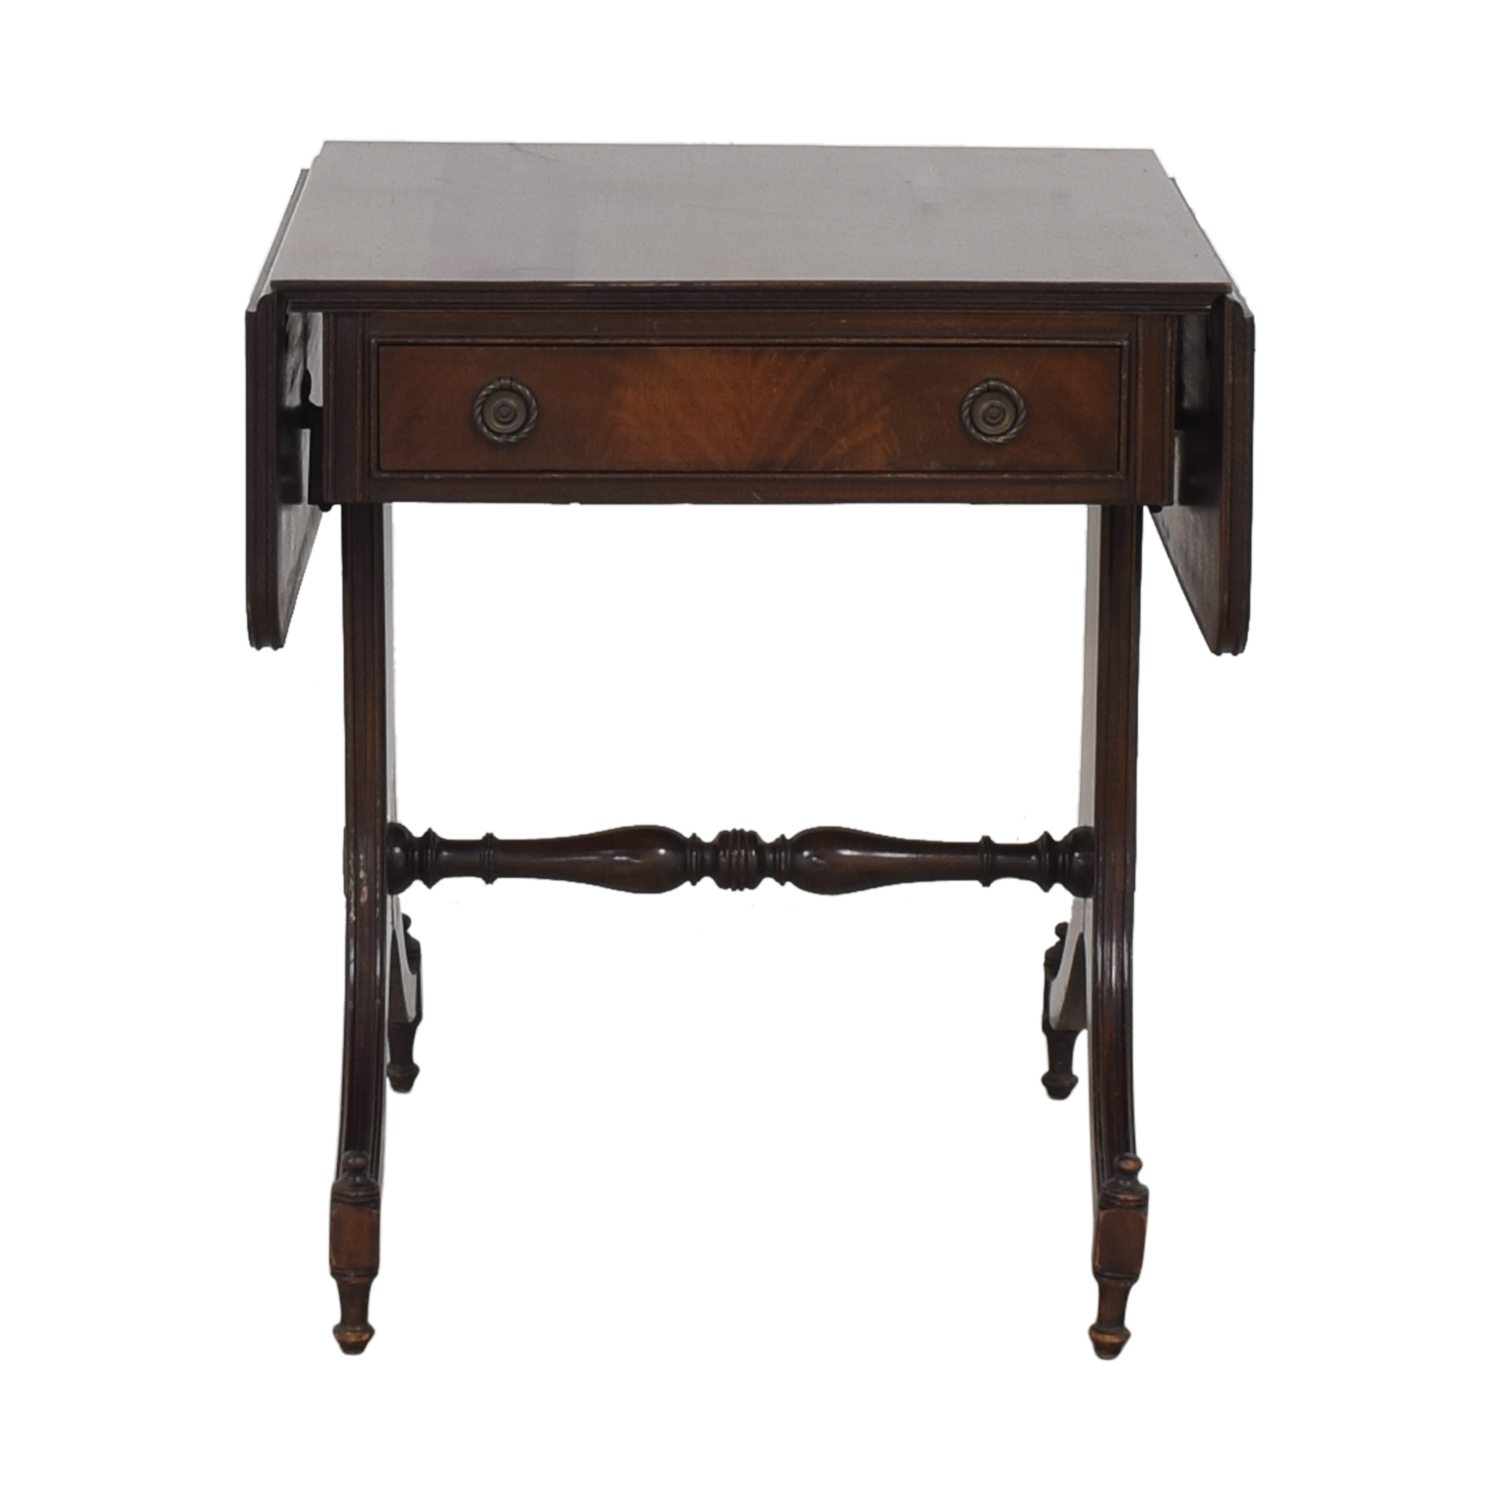 Vintage Drop Leaf Accent Table / Tables